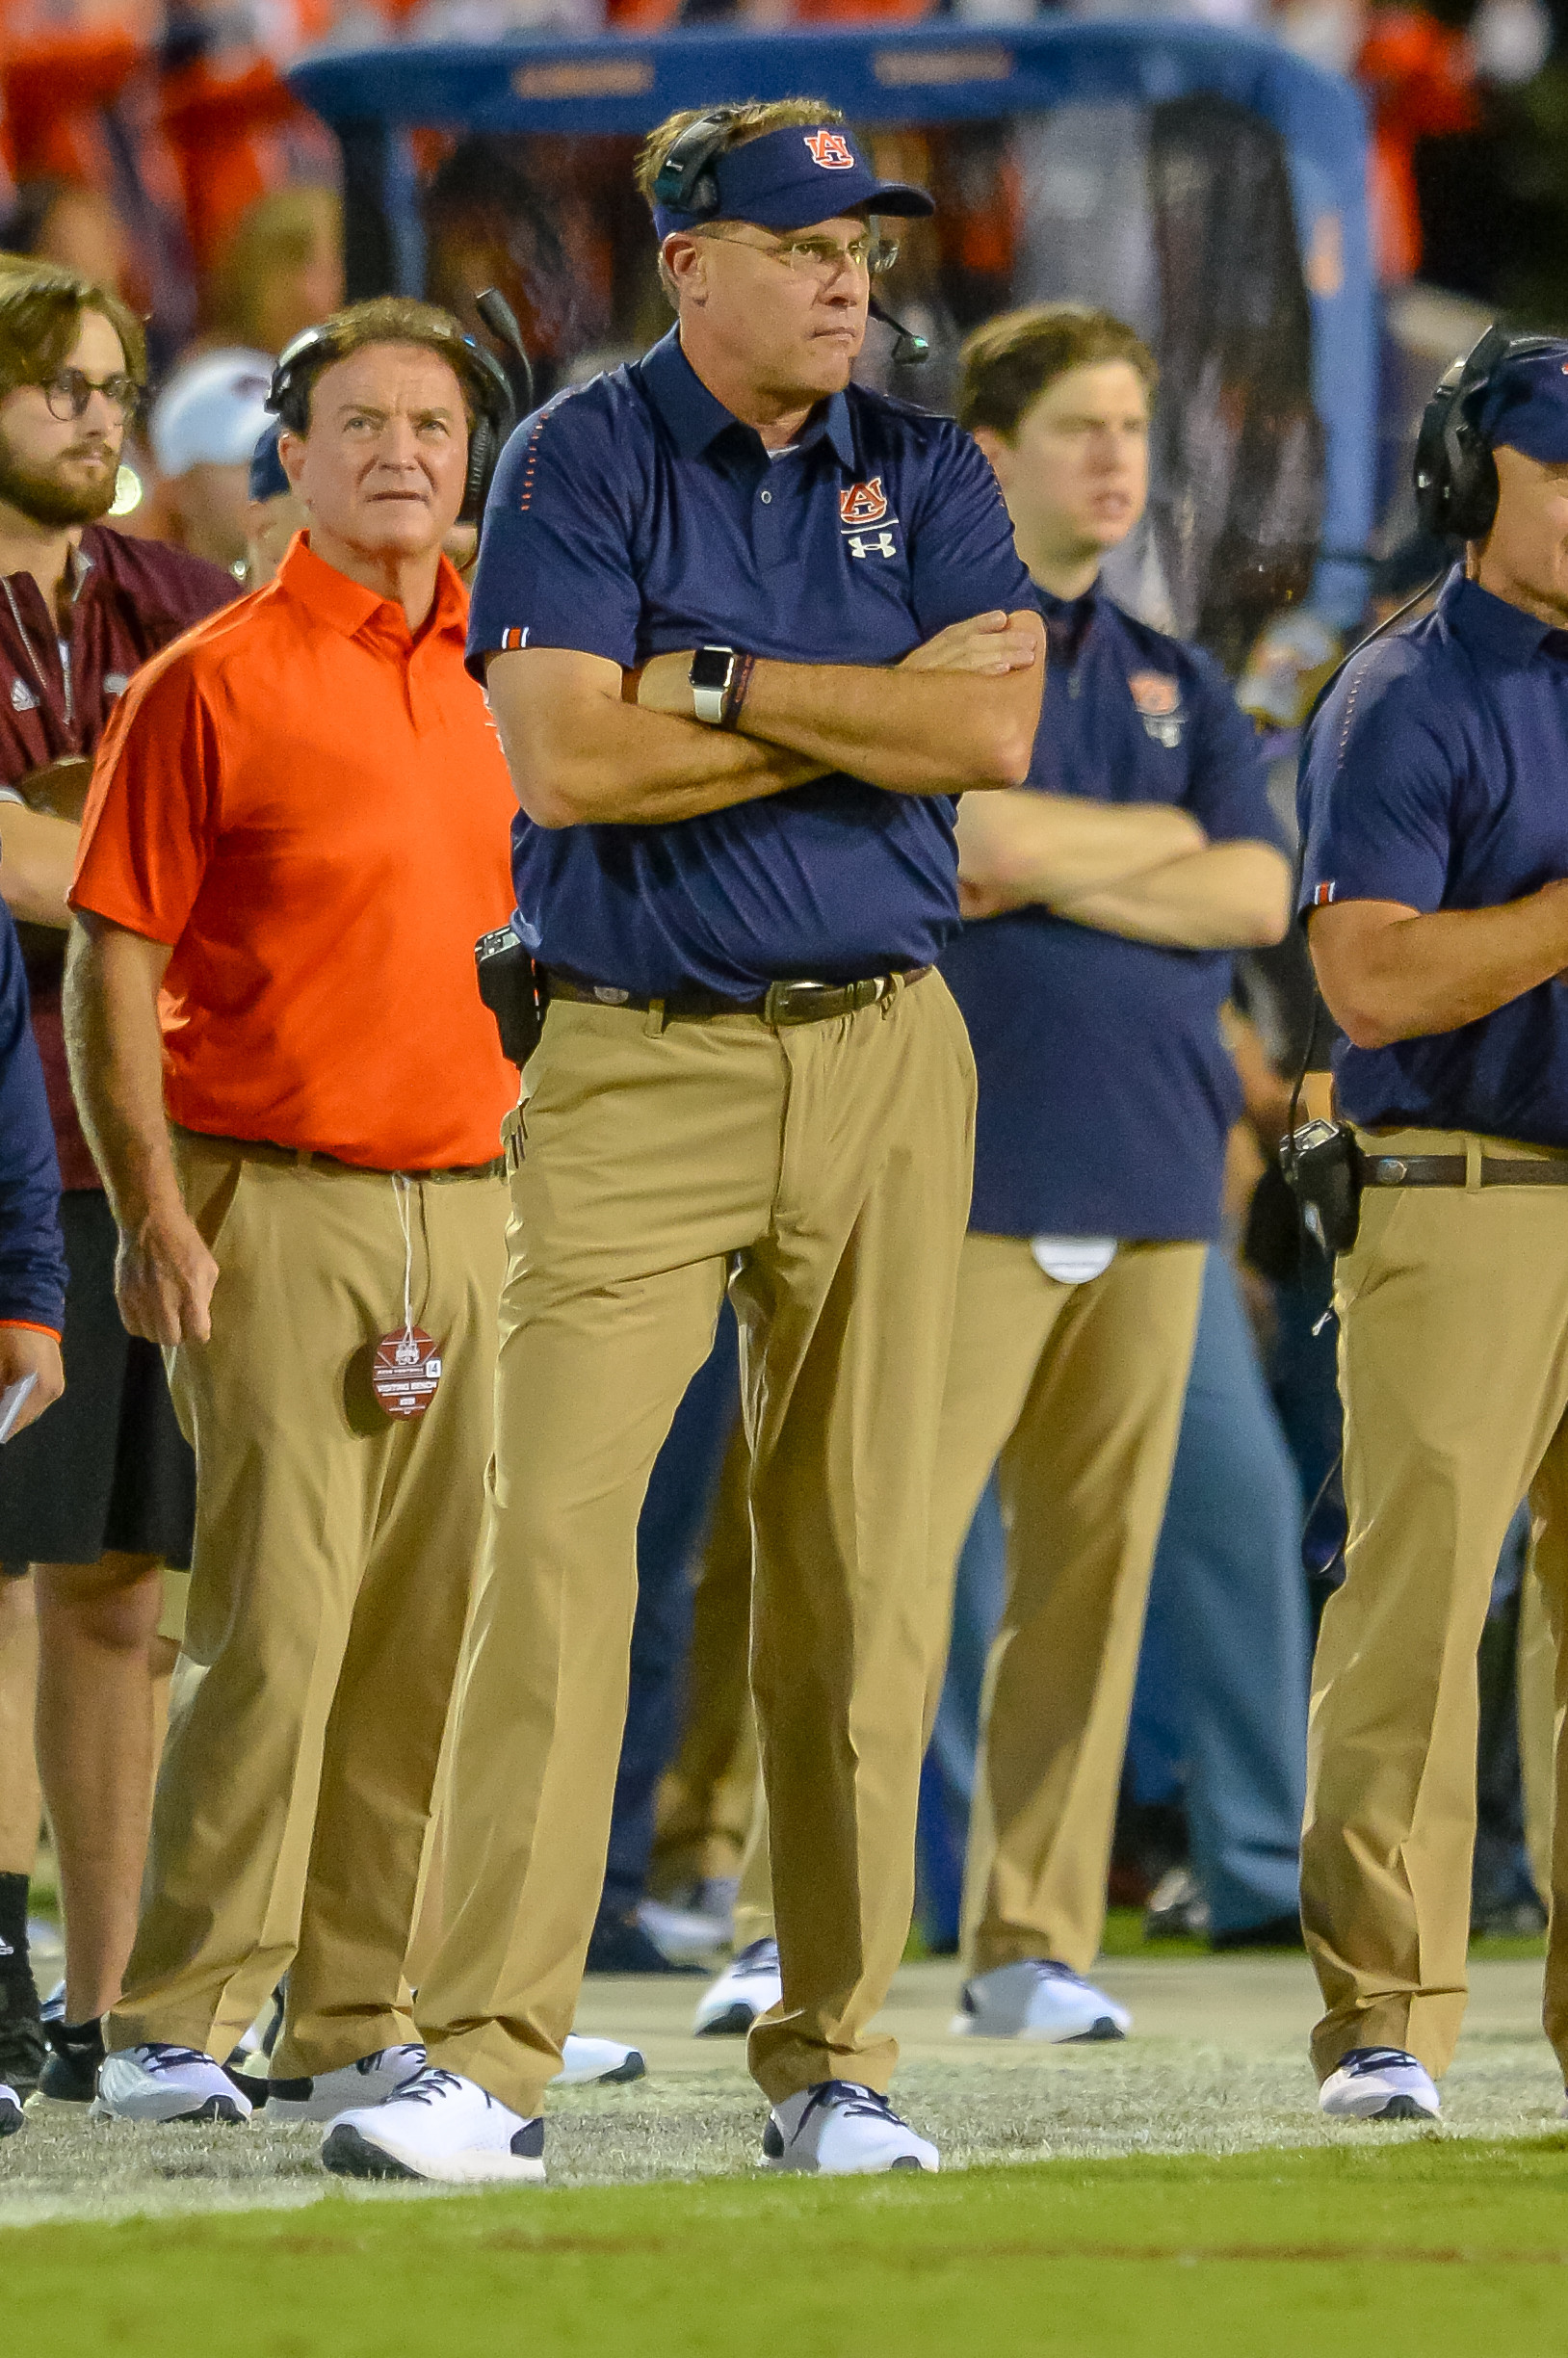 Auburn Tigers head coach Gus Malzahn looks on during the first half of Saturday's game, at Davis Wade Stadium in Starkville, MS. Daily Mountain Eagle -  Jeff Johnsey